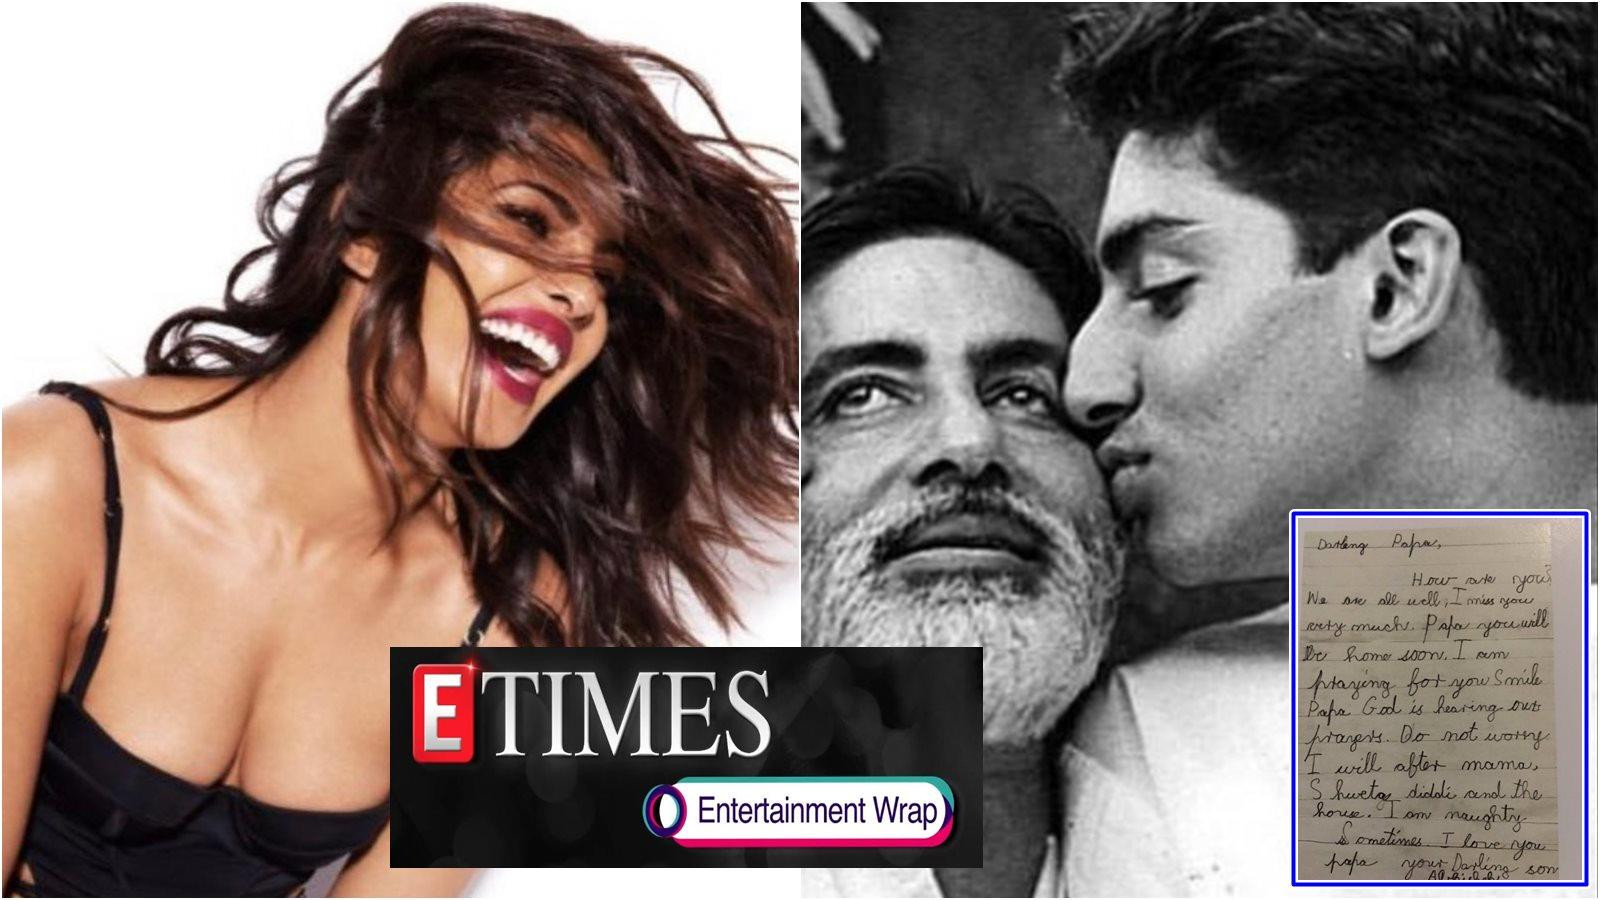 Priyanka Chopra is happy to see Mumbai's blue sky after leaving Delhi; Amitabh Bachchan shares old letter written by Abhishek as a kid, and more...